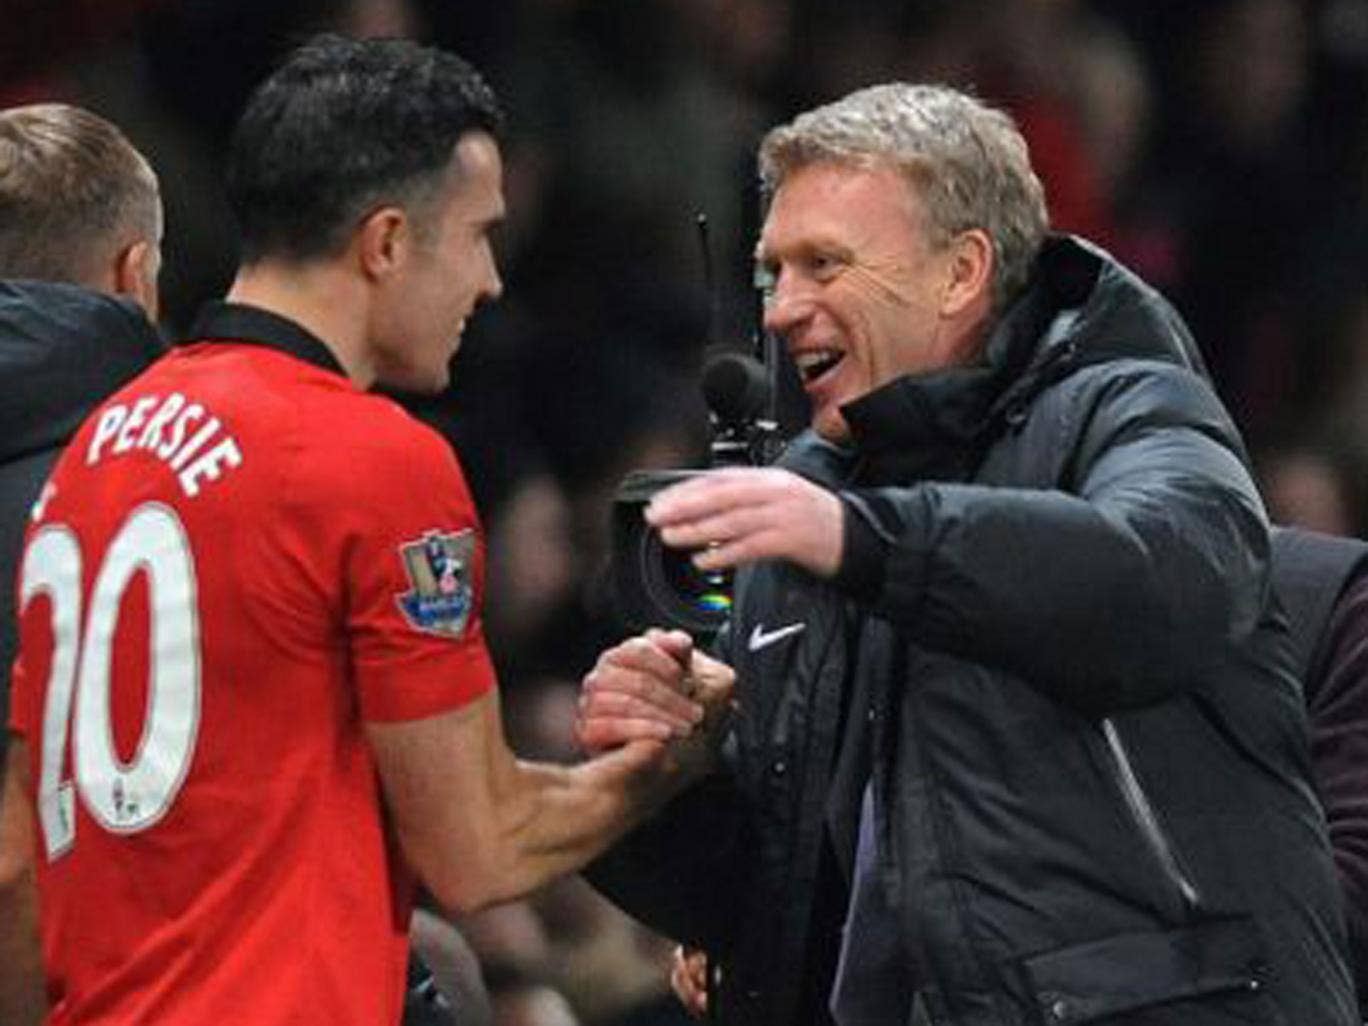 David Moyes greets the goalscorer Robin van Persie at the end of the game